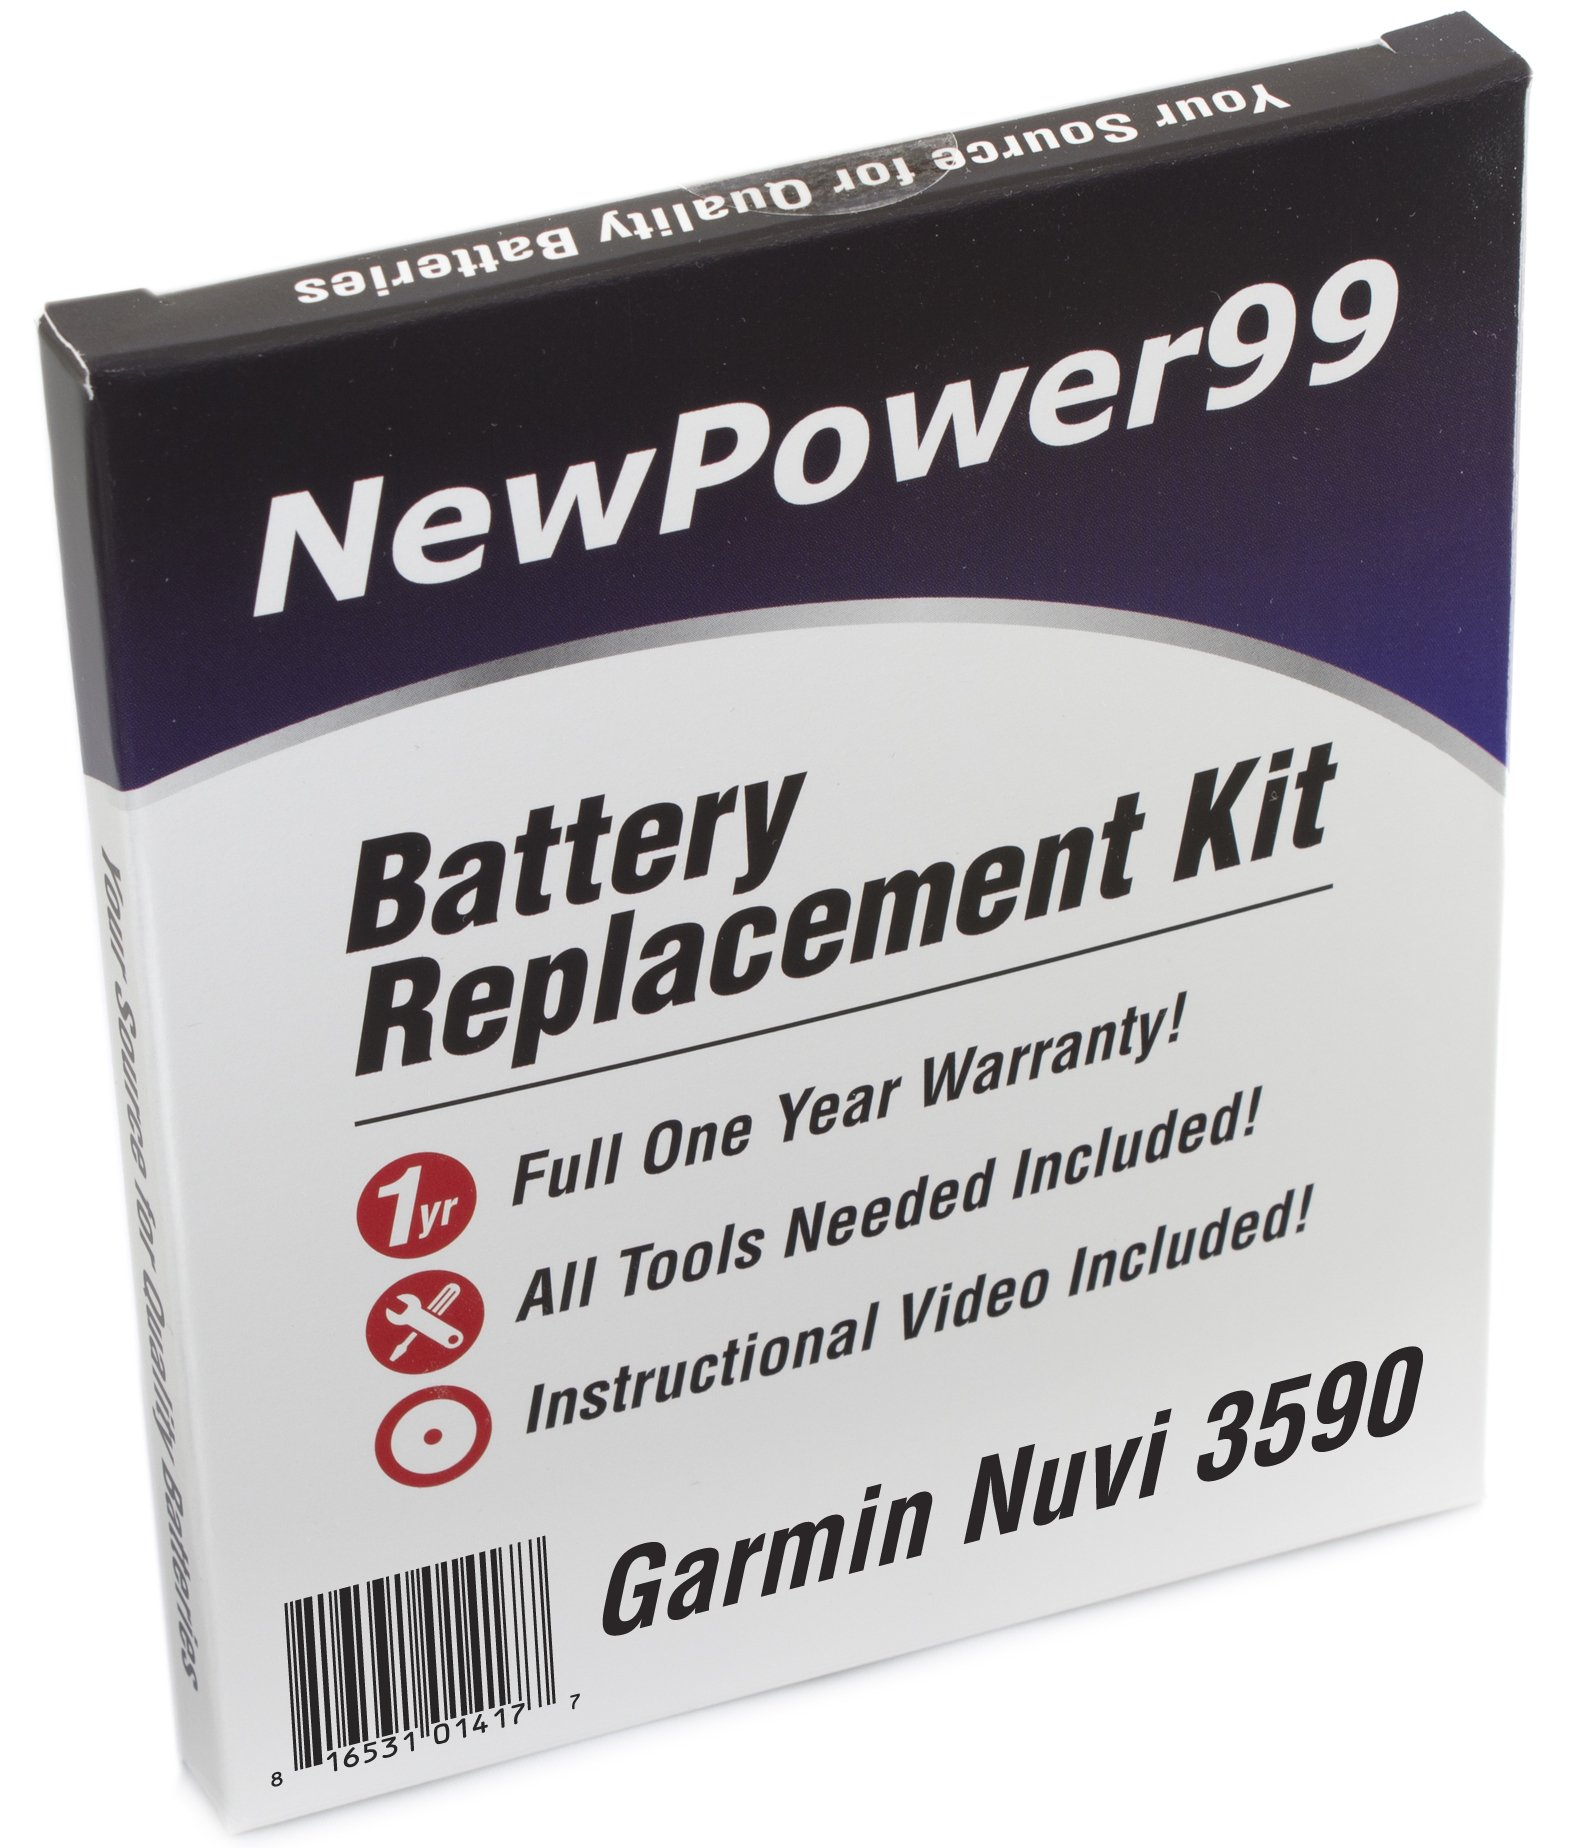 Battery Replacement Kit for Garmin Nuvi 3590 with Installation Video, Tools, and Extended Life Battery.